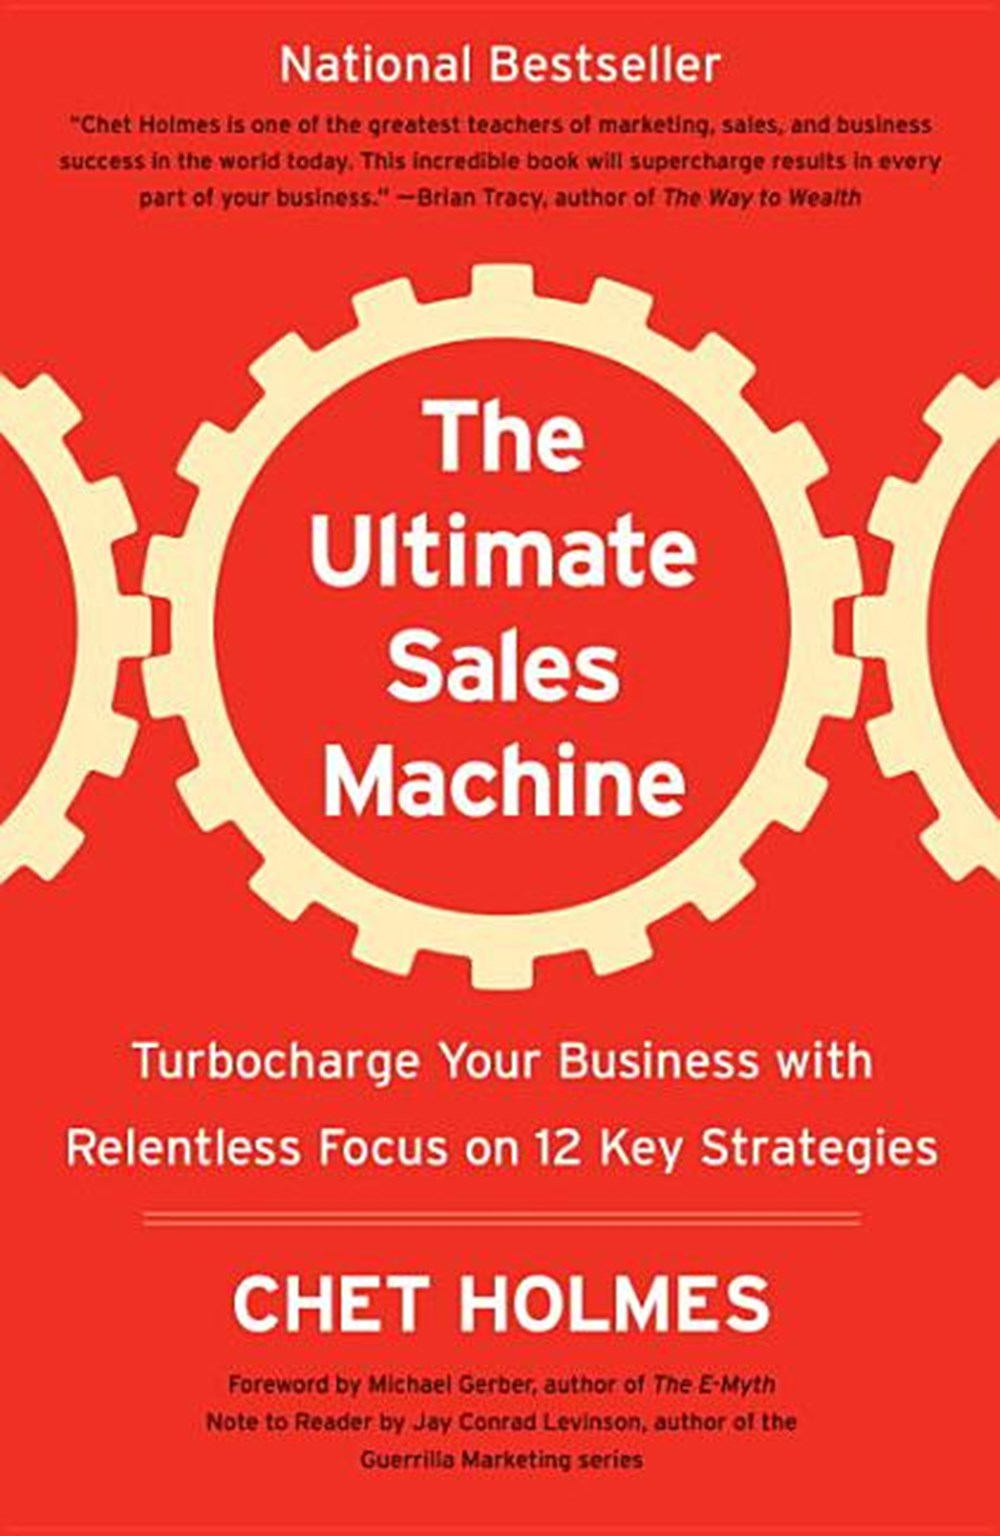 Ultimate Sales Machine Turbocharge Your Business with Relentless Focus on 12 Key Strategies